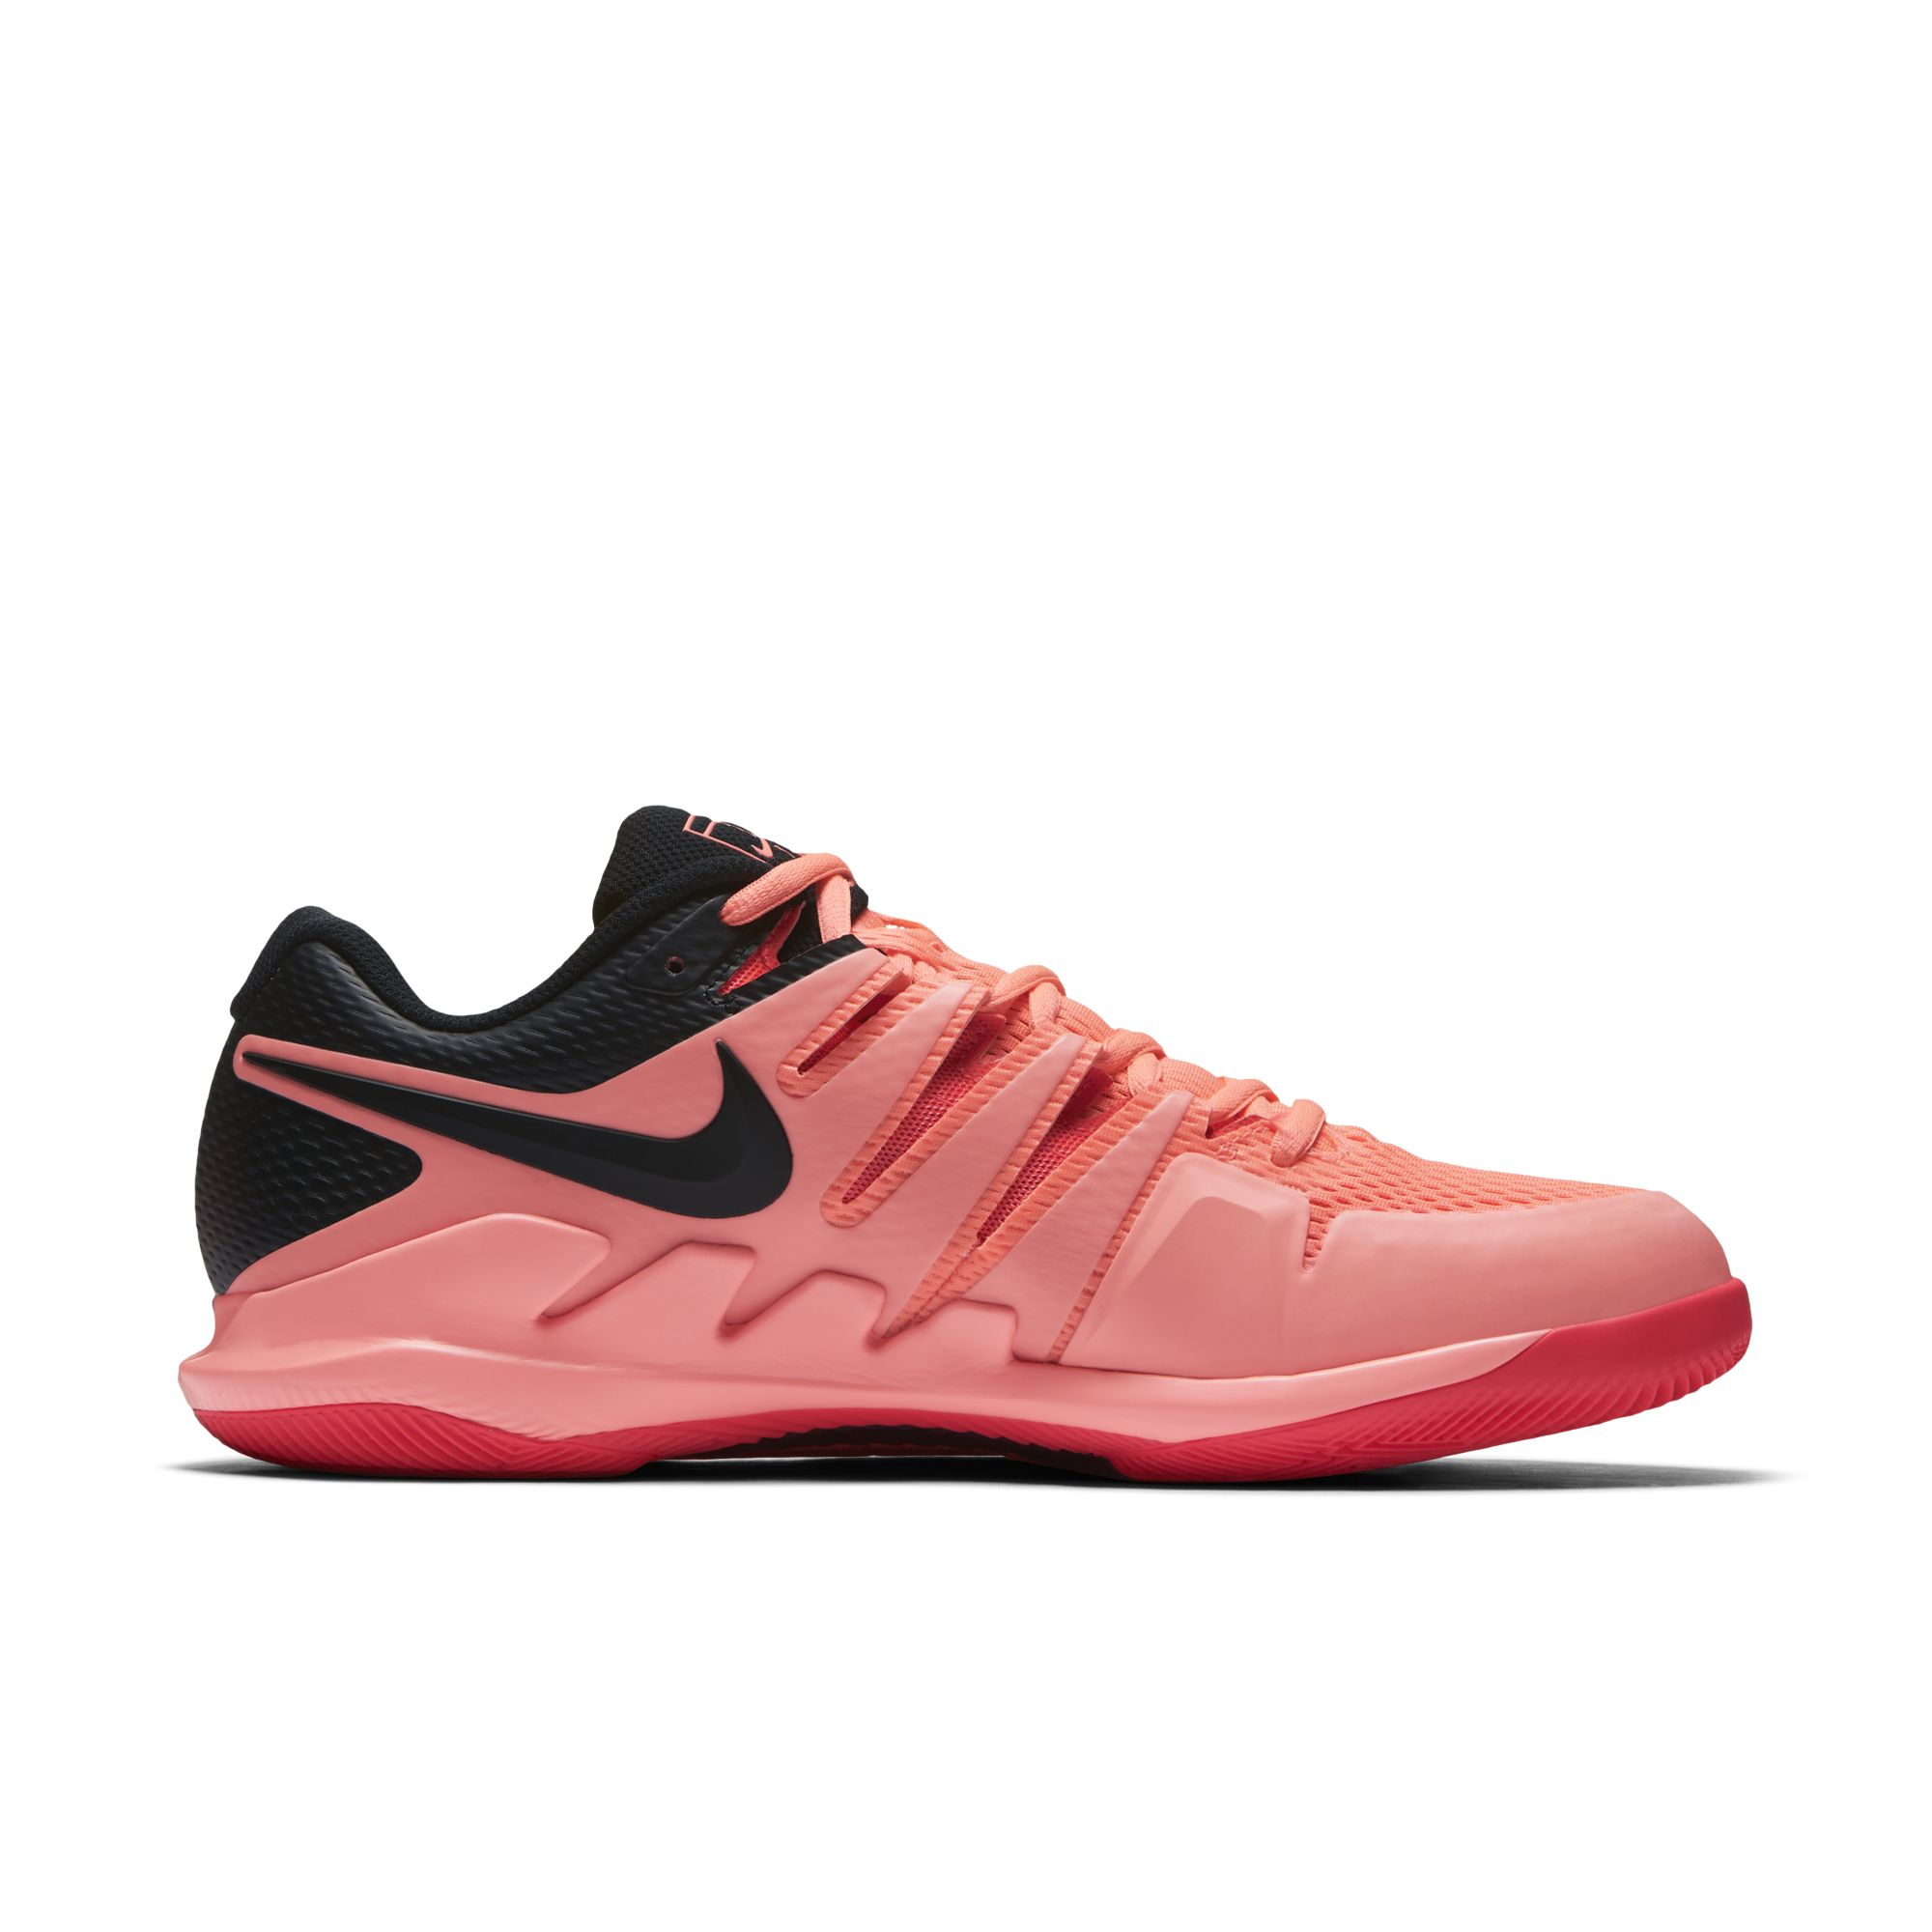 roger federer nike air zoom vapor x solar red 3